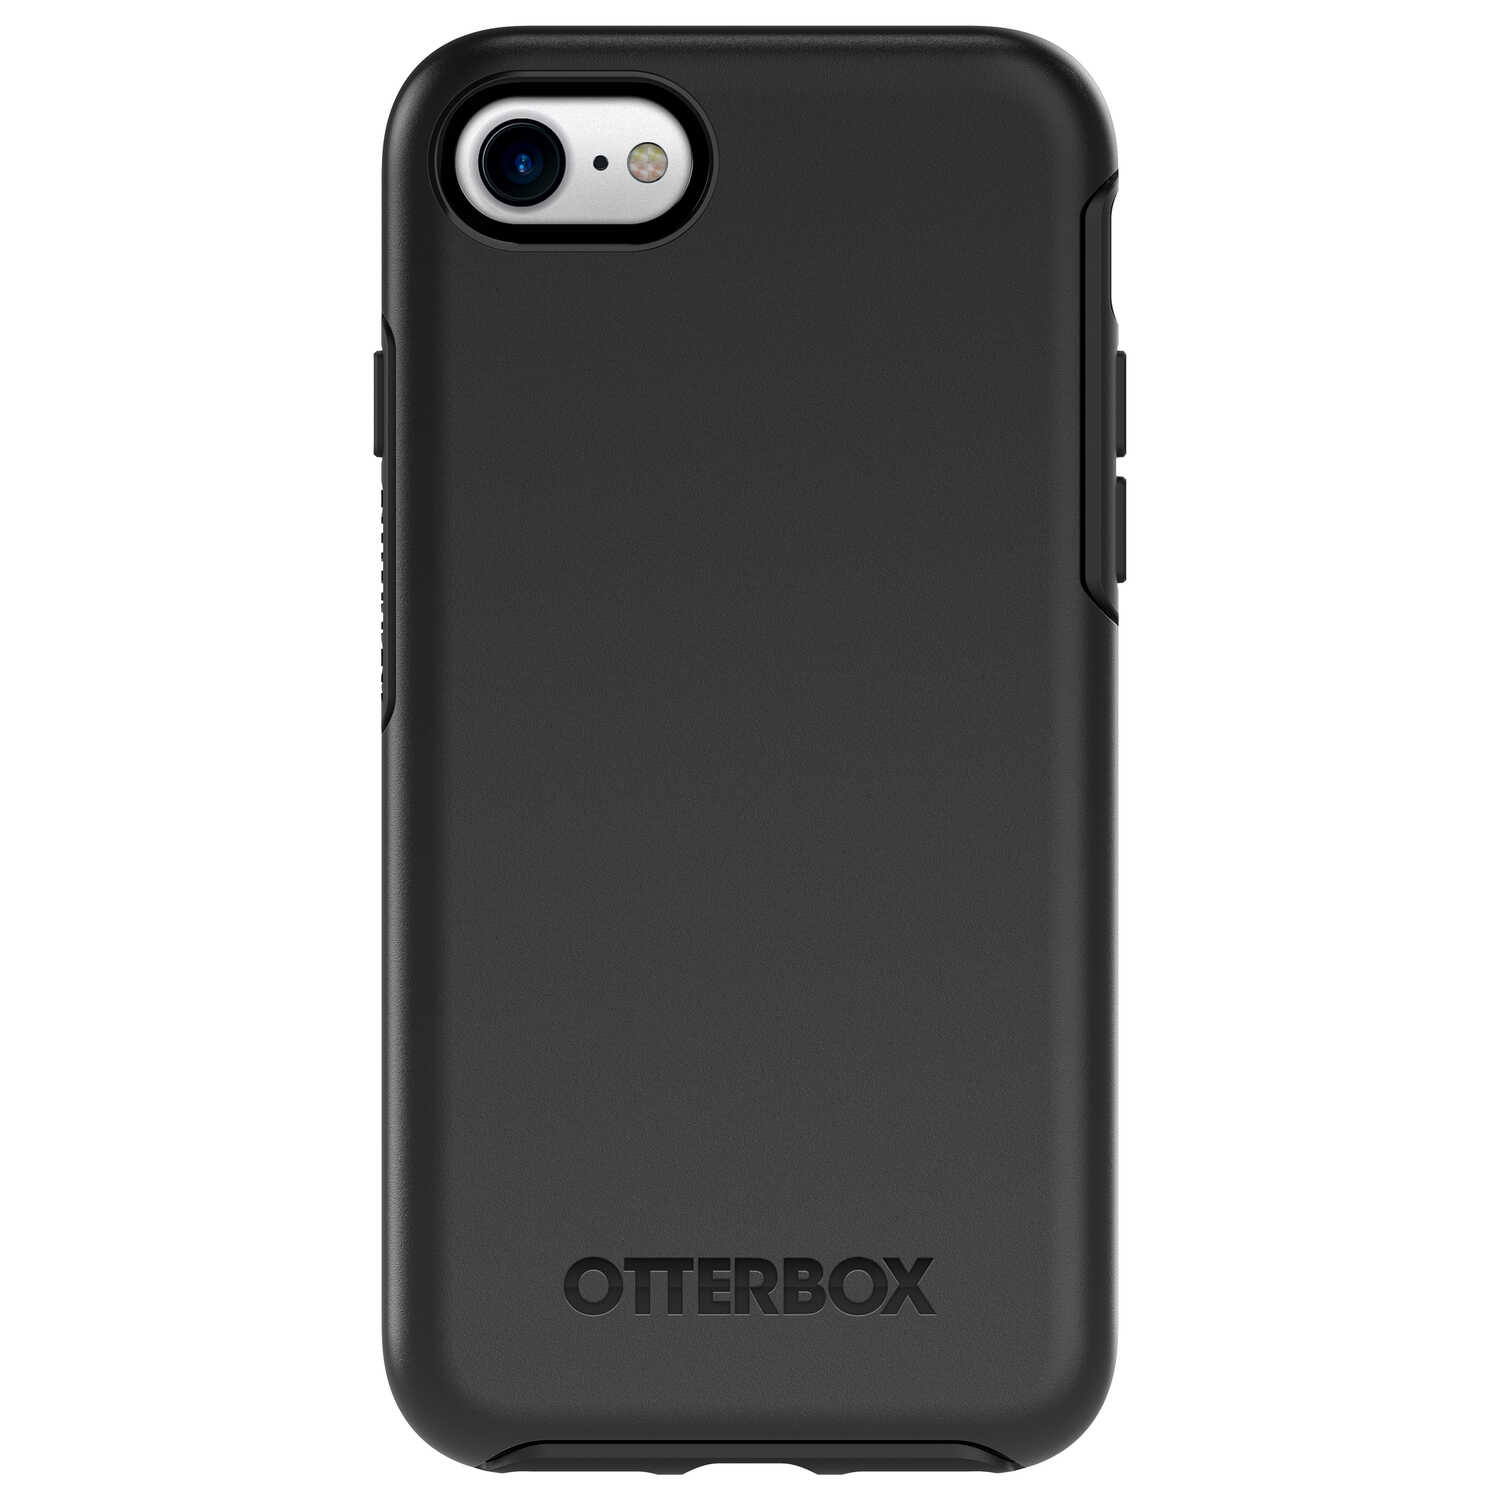 Otter Box  Symmetry  Black  Cell Phone Case  For Apple iPhone 7